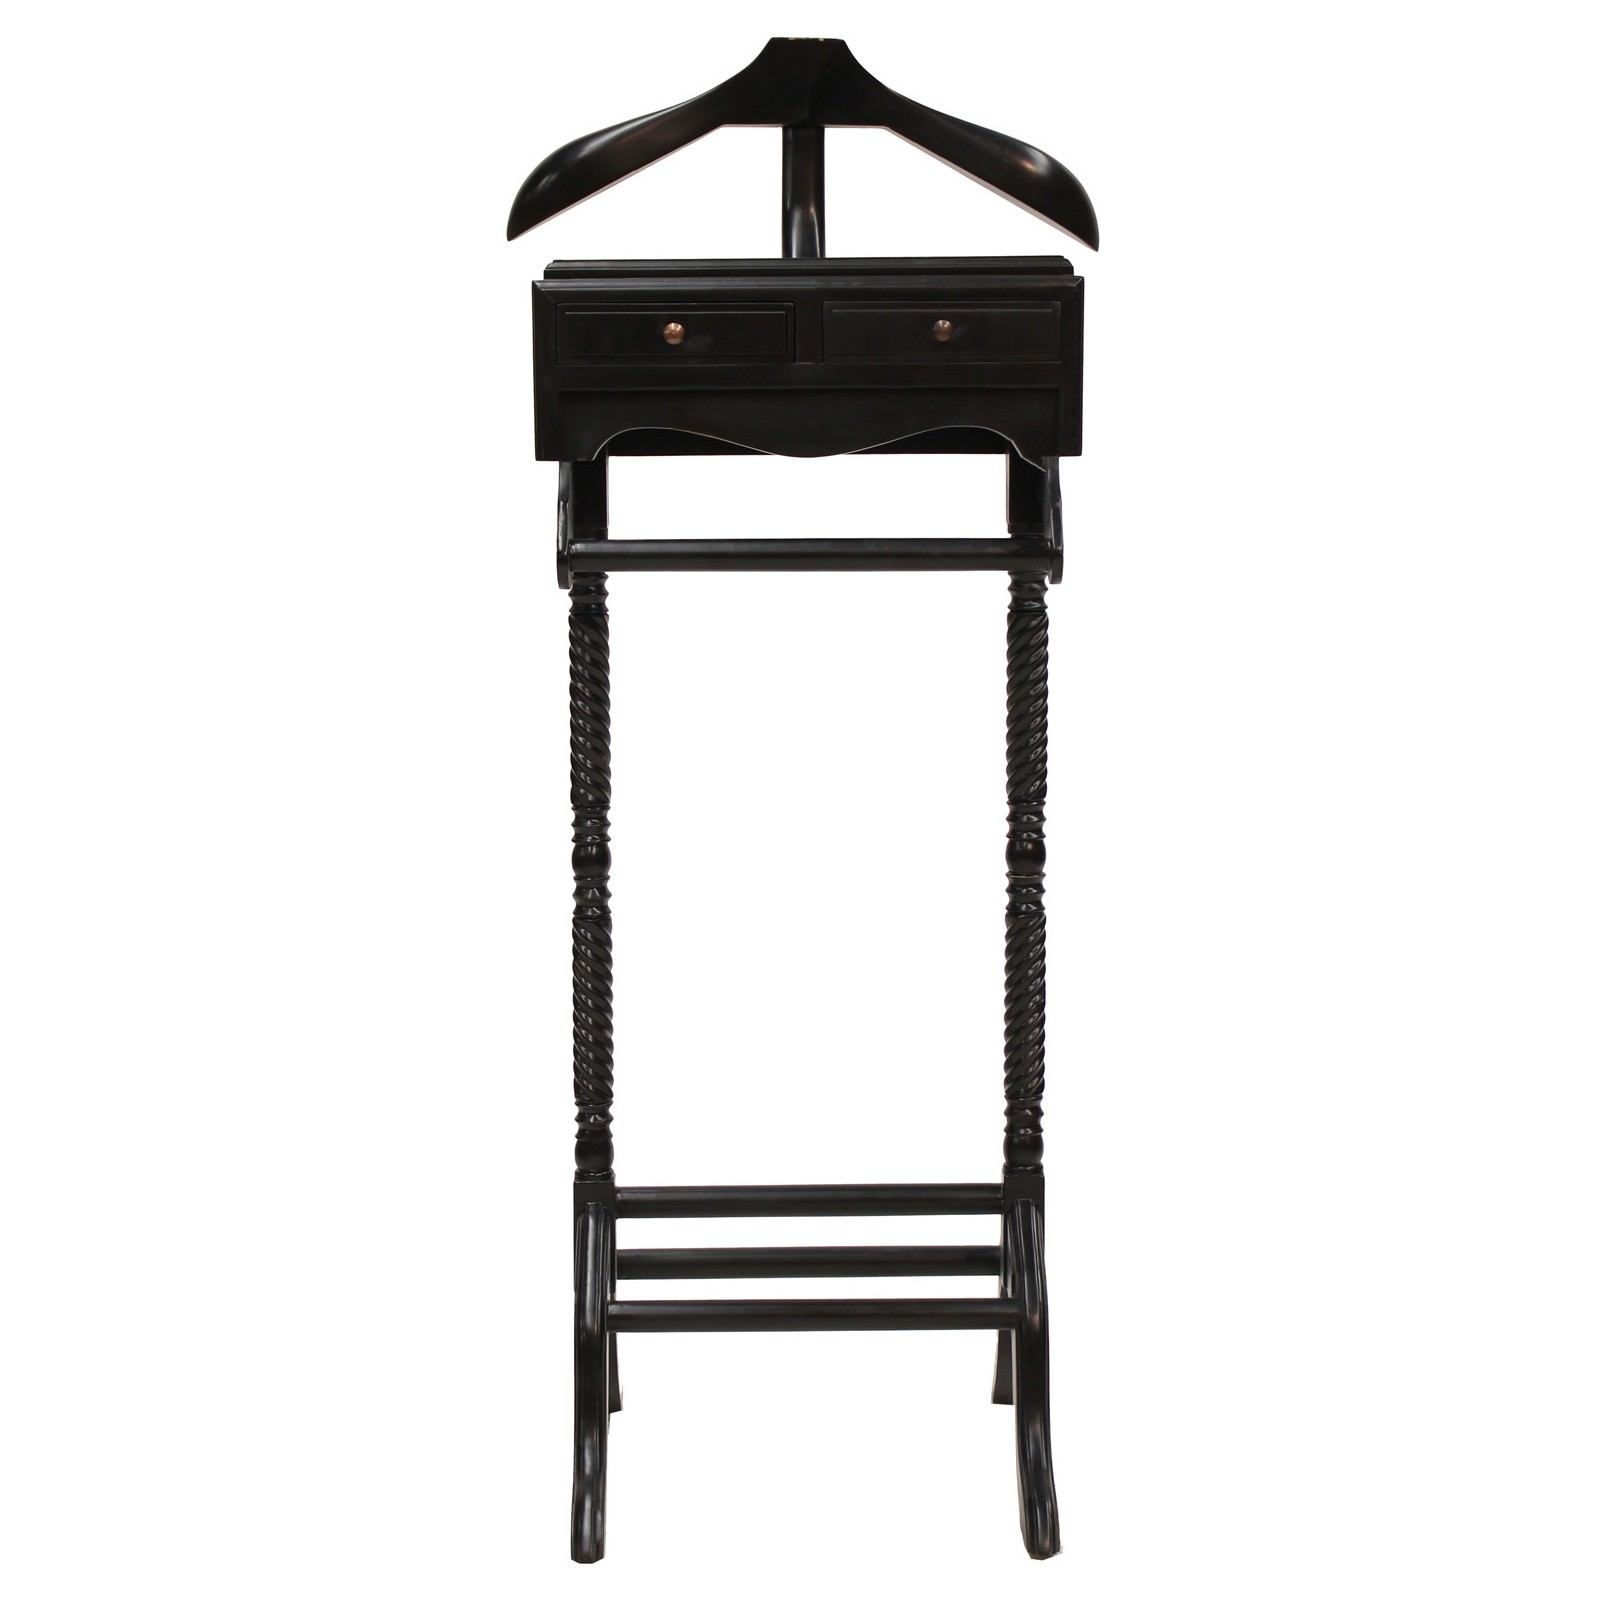 Recco Hand Crafted Mahogany Valet Stand, Black